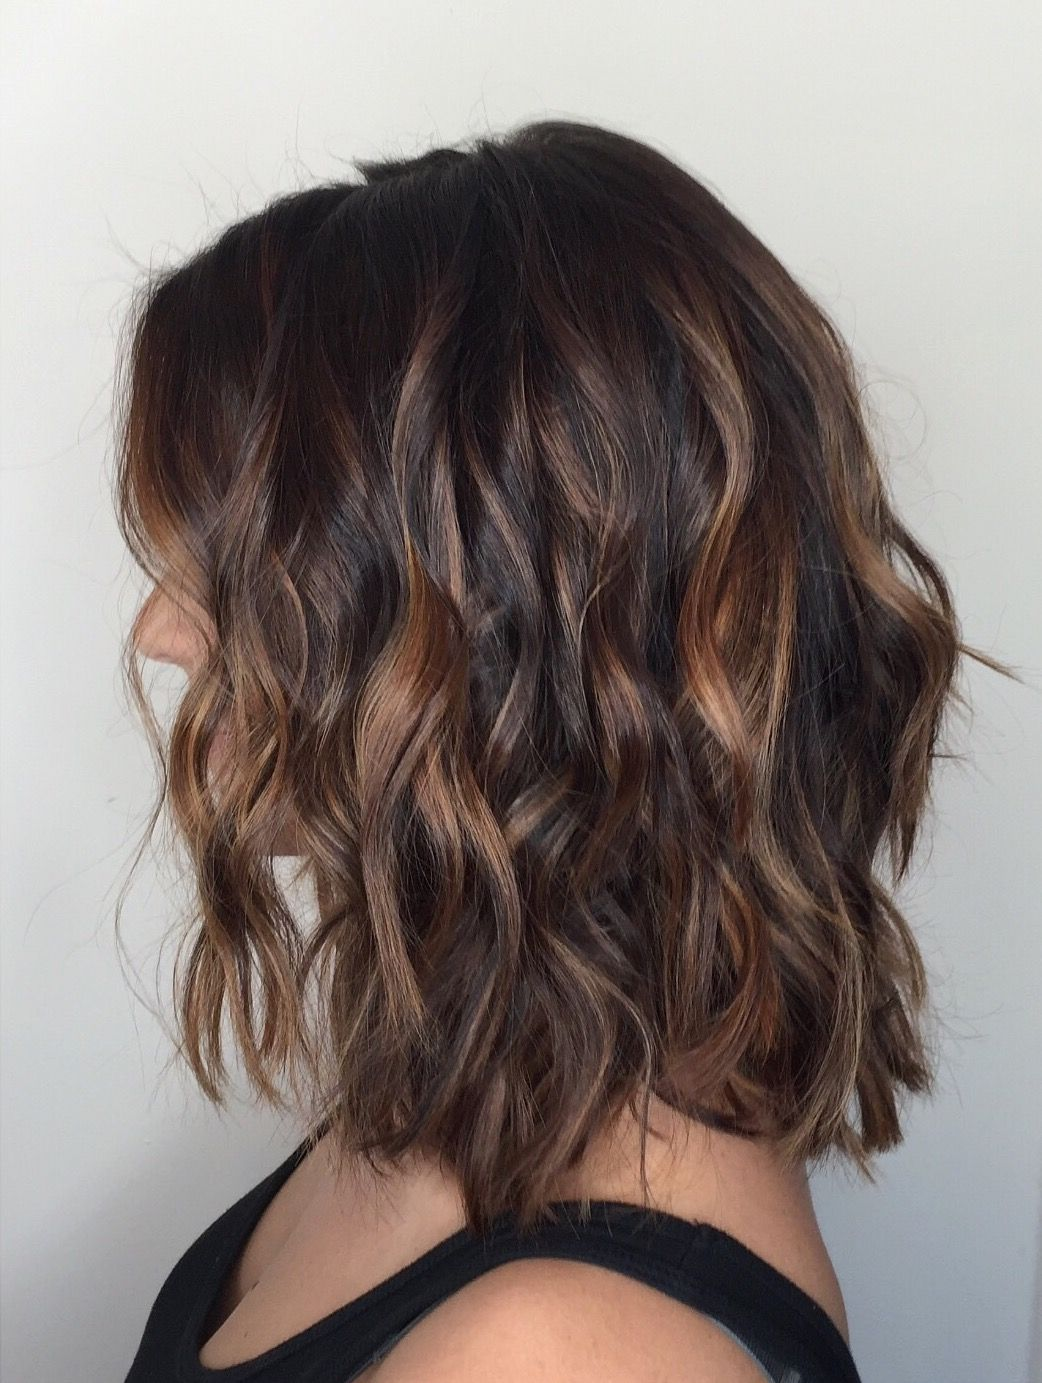 Hummm When I See All These Hair Color Ideas For Short Hairstyles It Always Makes Me Jealous I Wish I Could Short Hair Balayage Balayage Hair Short Hair Color